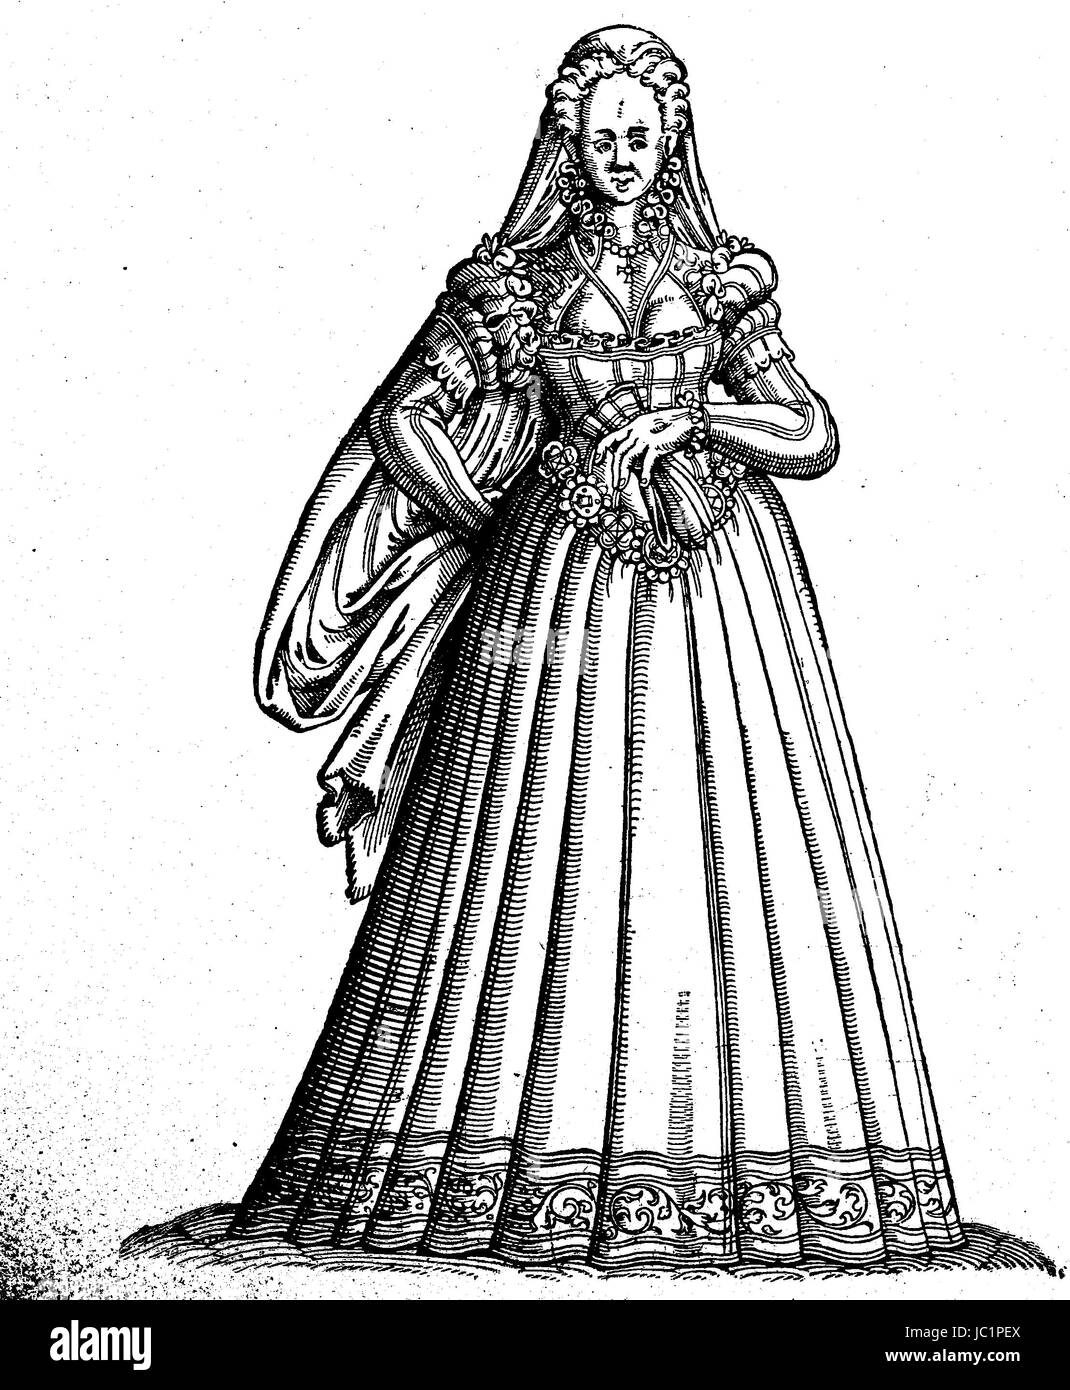 Costume of the young women at Rome, costume picture from the 16th century, digital improved reproduction from a - Stock Image